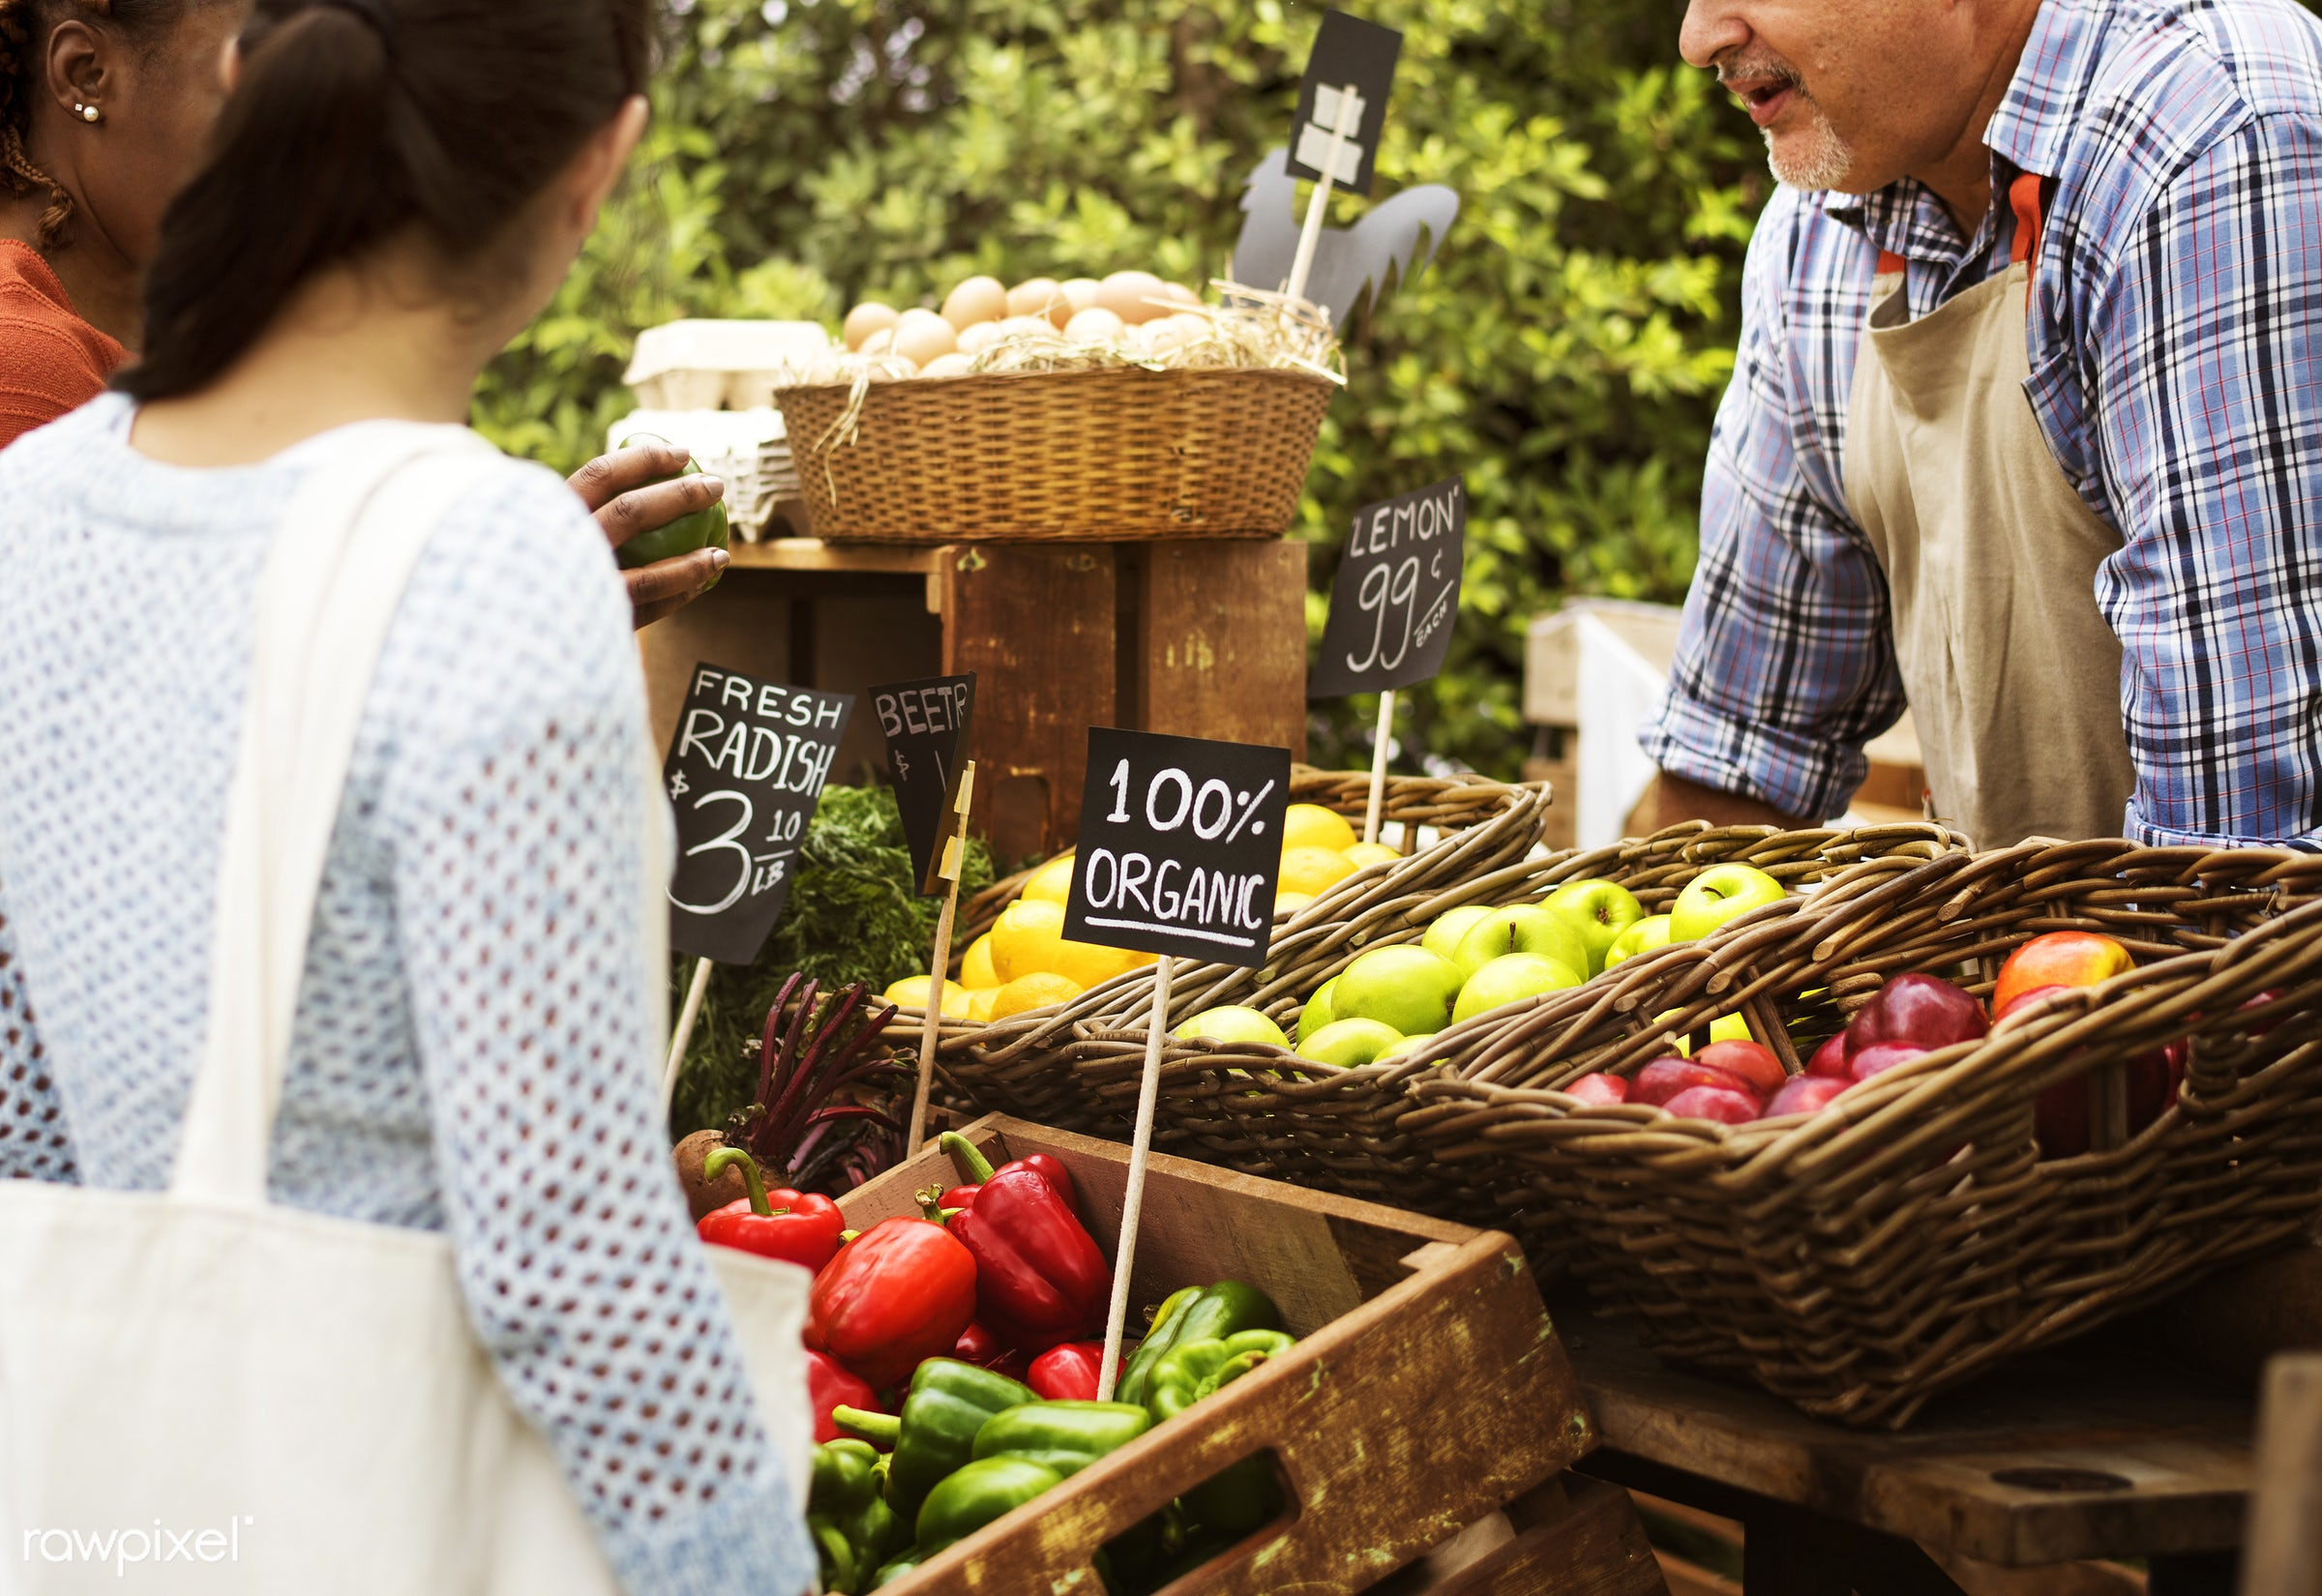 shop, person, stall, consumer, egg, people, farmer, choosing, choose, display, tomatoes, sign, nutrition, price, market,...